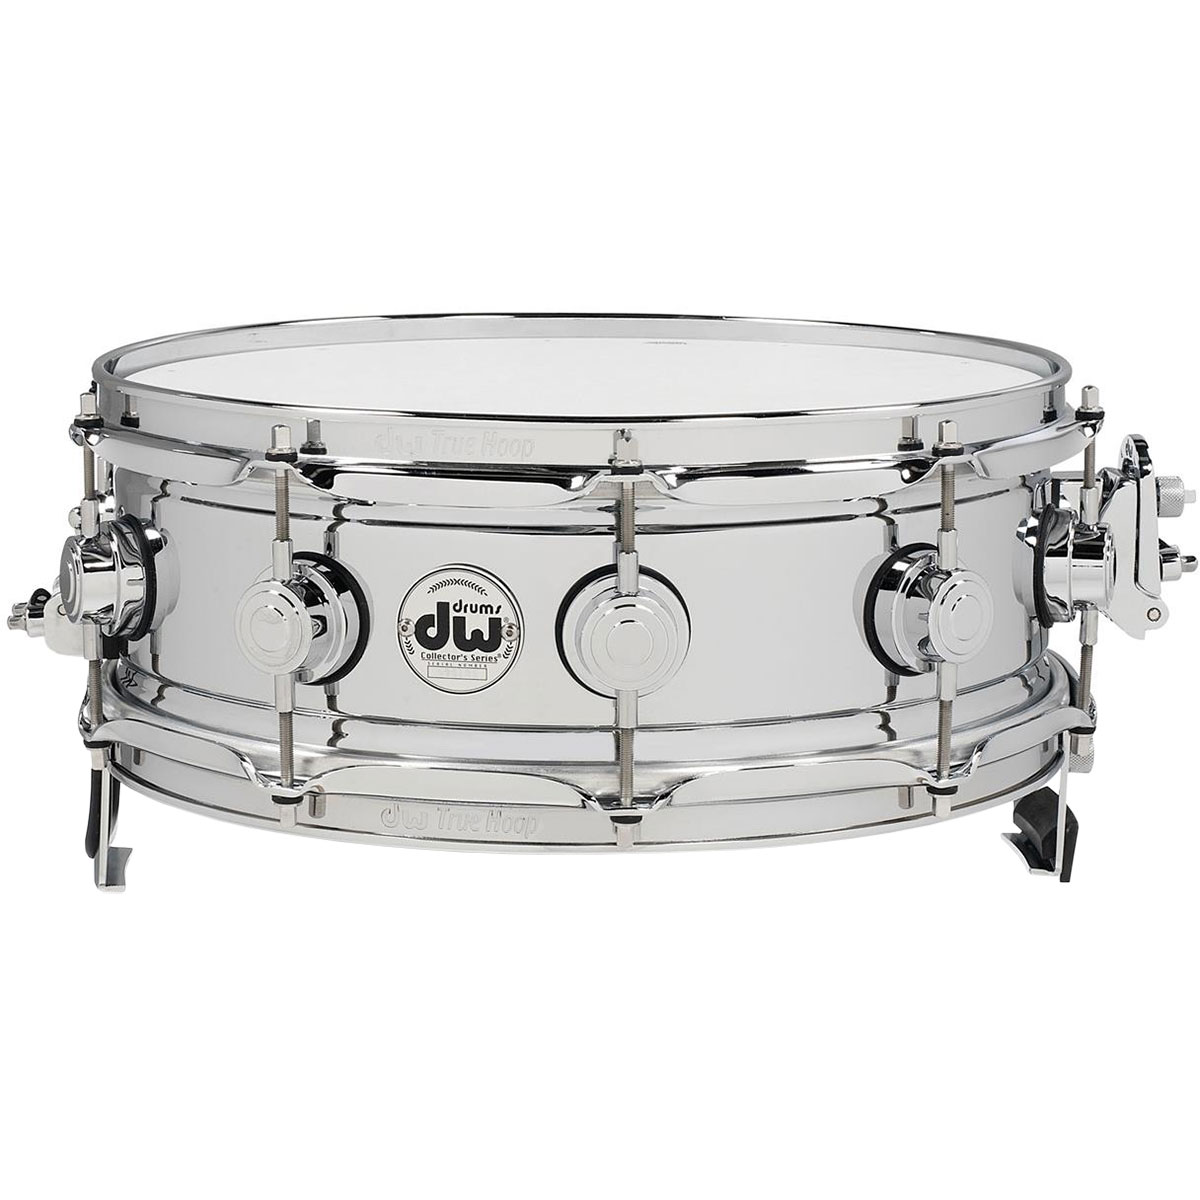 "DW 5"" x 14"" Collector"